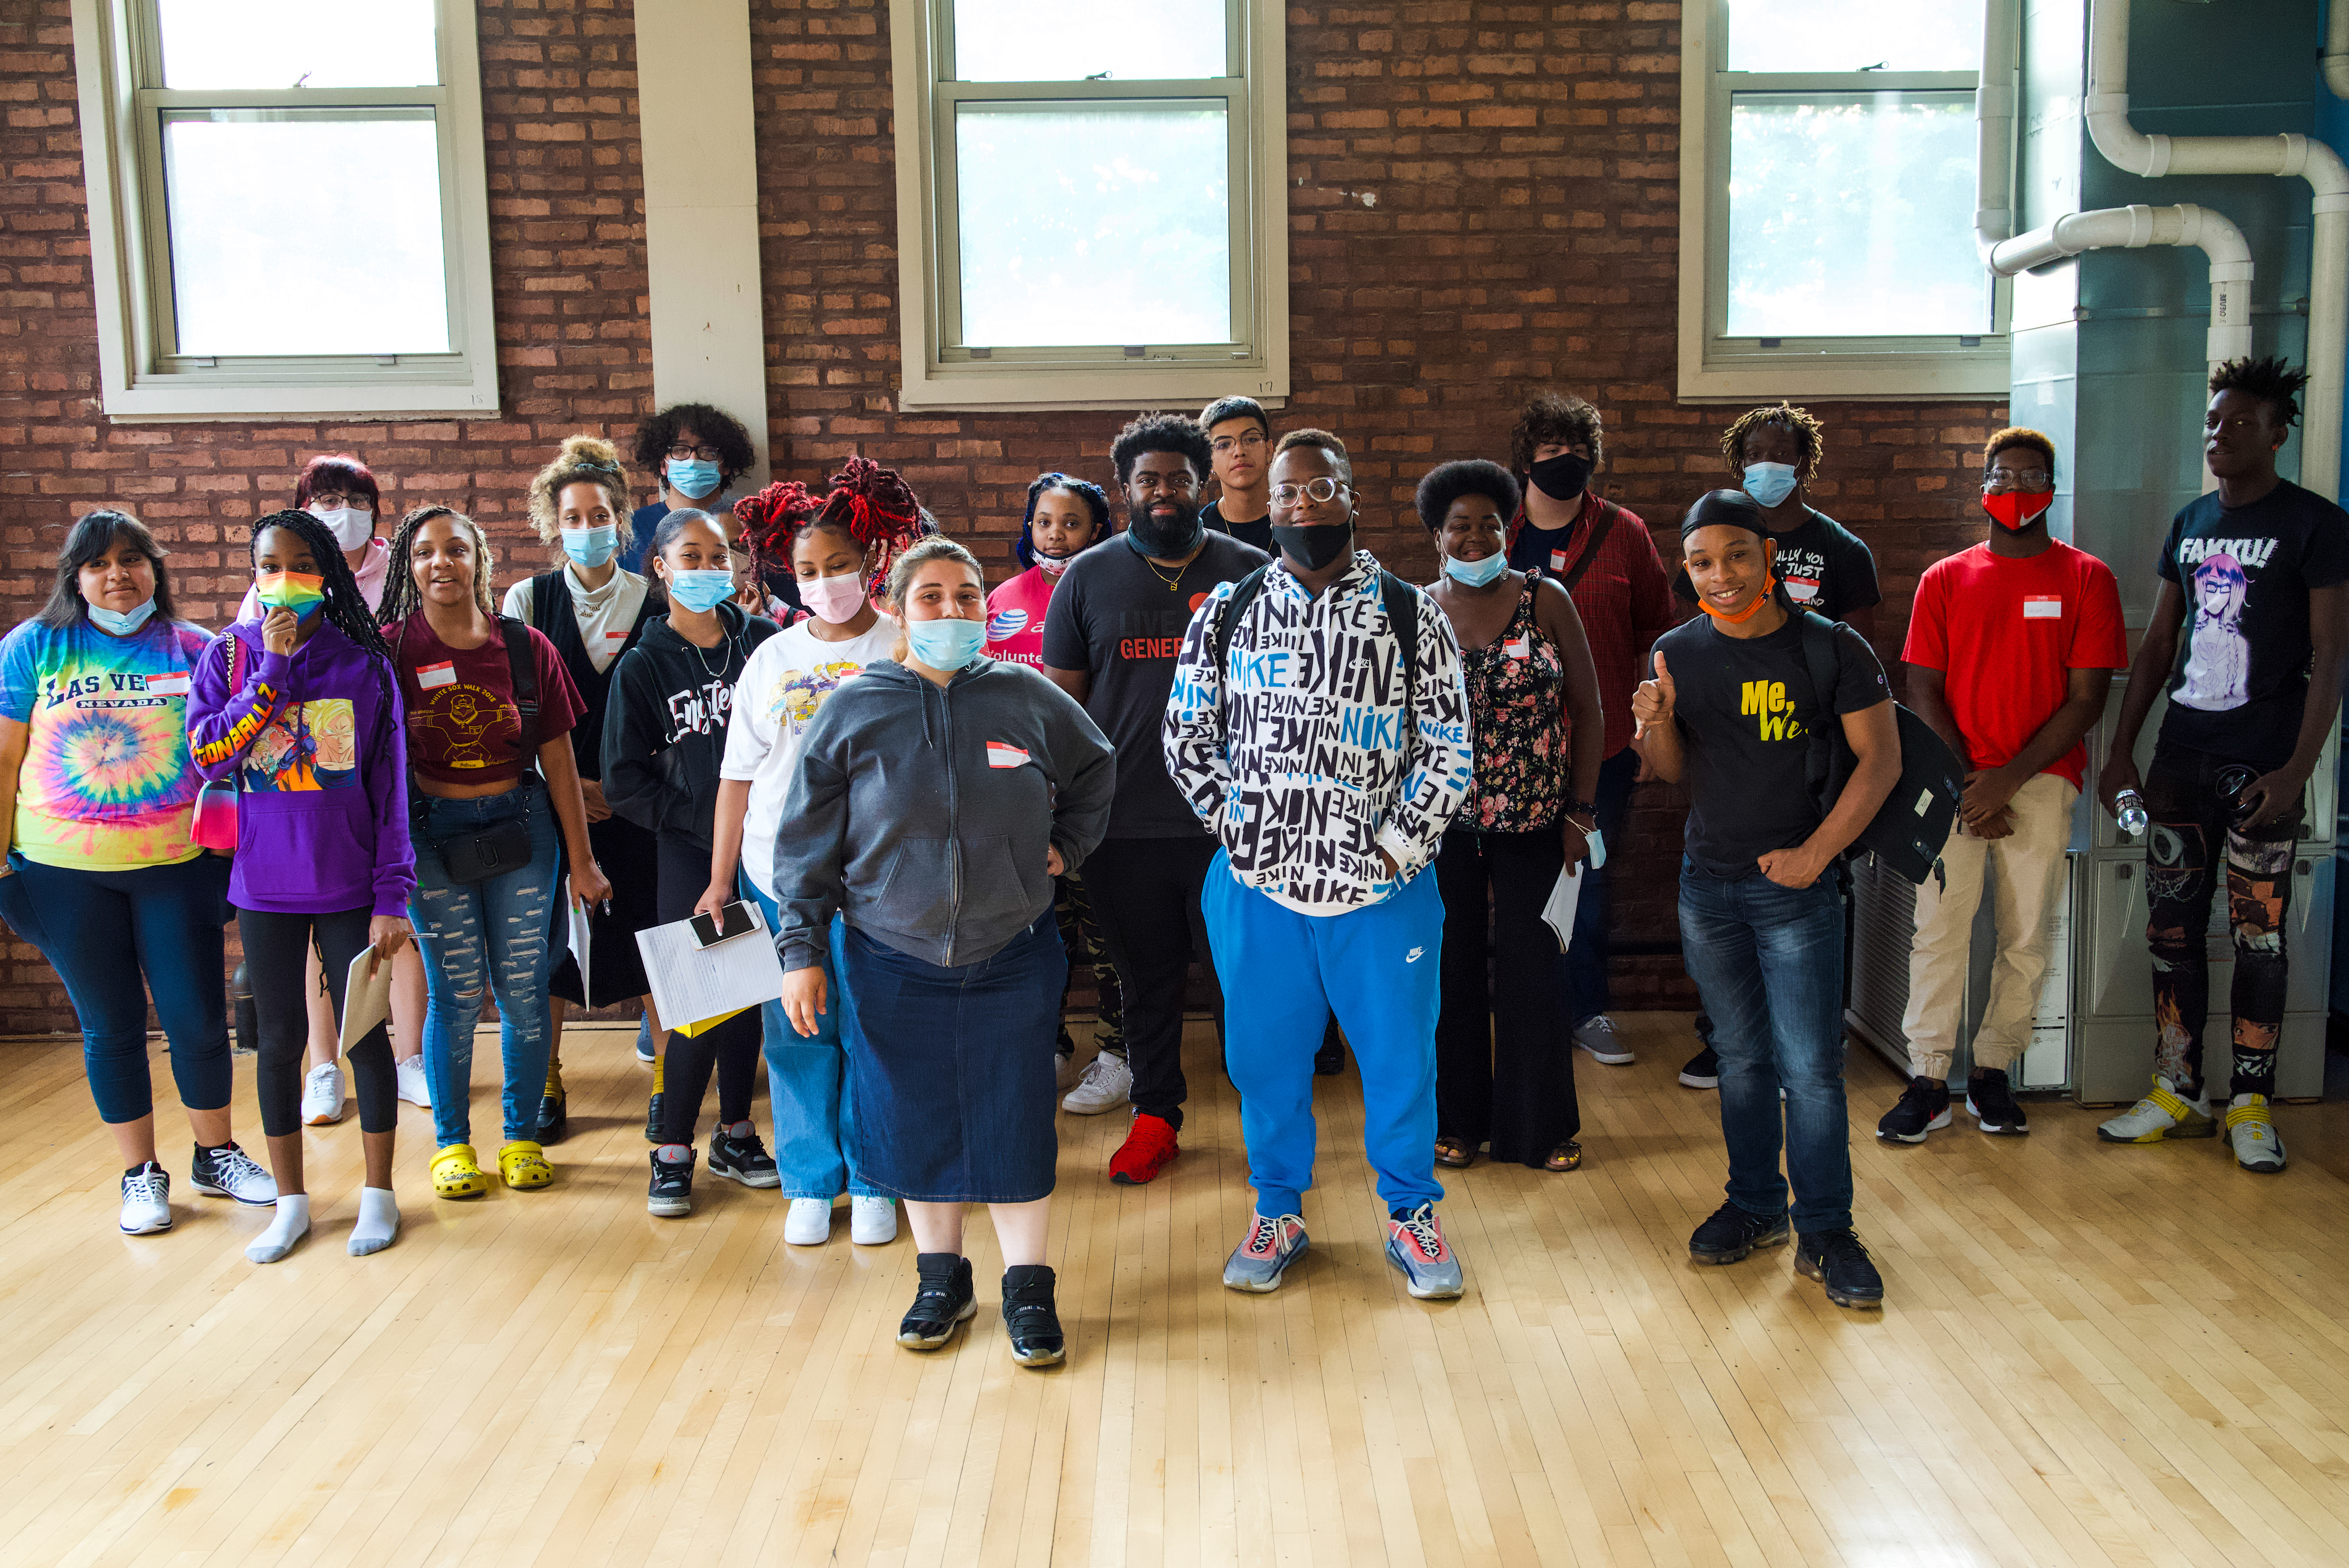 Participants of Chicago Stories on the Block gather around guest speaker Simeon Frierson (center) from Free Spirit Media.